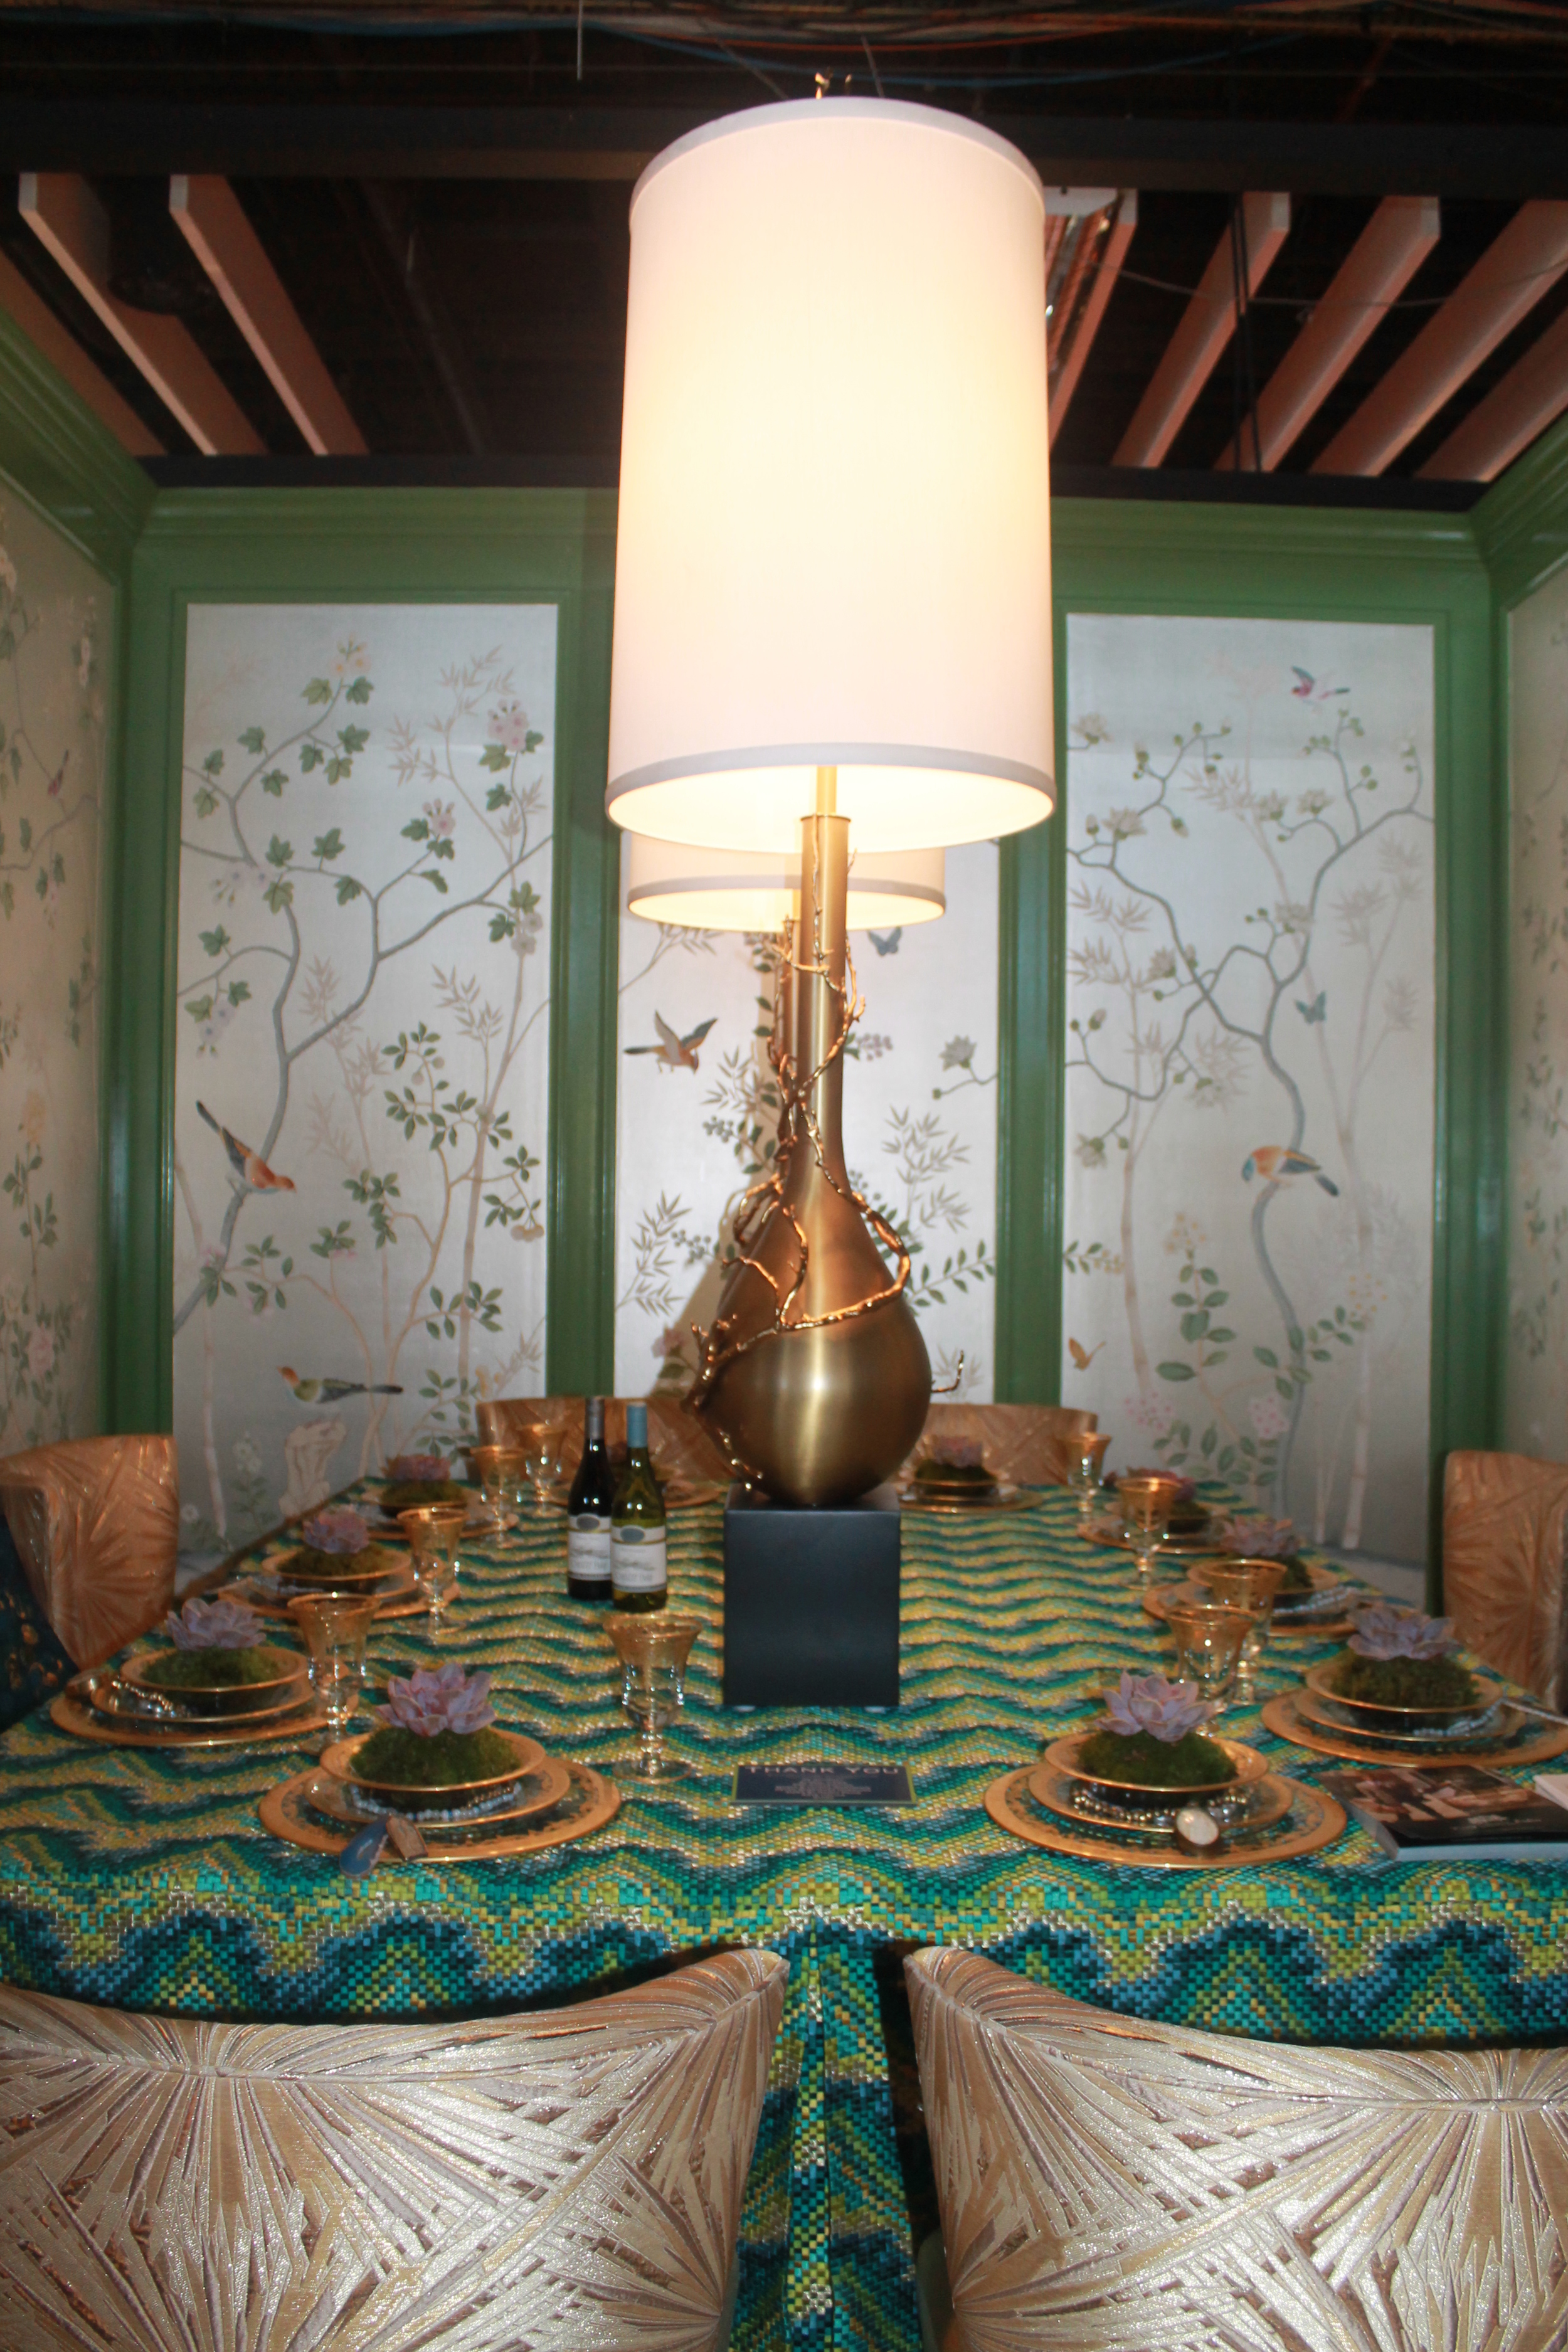 """Corey Damen Jenkins """"Branches Out"""" with Beacon Hill Designs. Inspired by the organic beauty of Rio de Janeiro this table's careful and intricate setting plays homage to the city's sophisticated and edgy design combined with that of the bohemian. Image property of Jessica Gordon Ryan."""